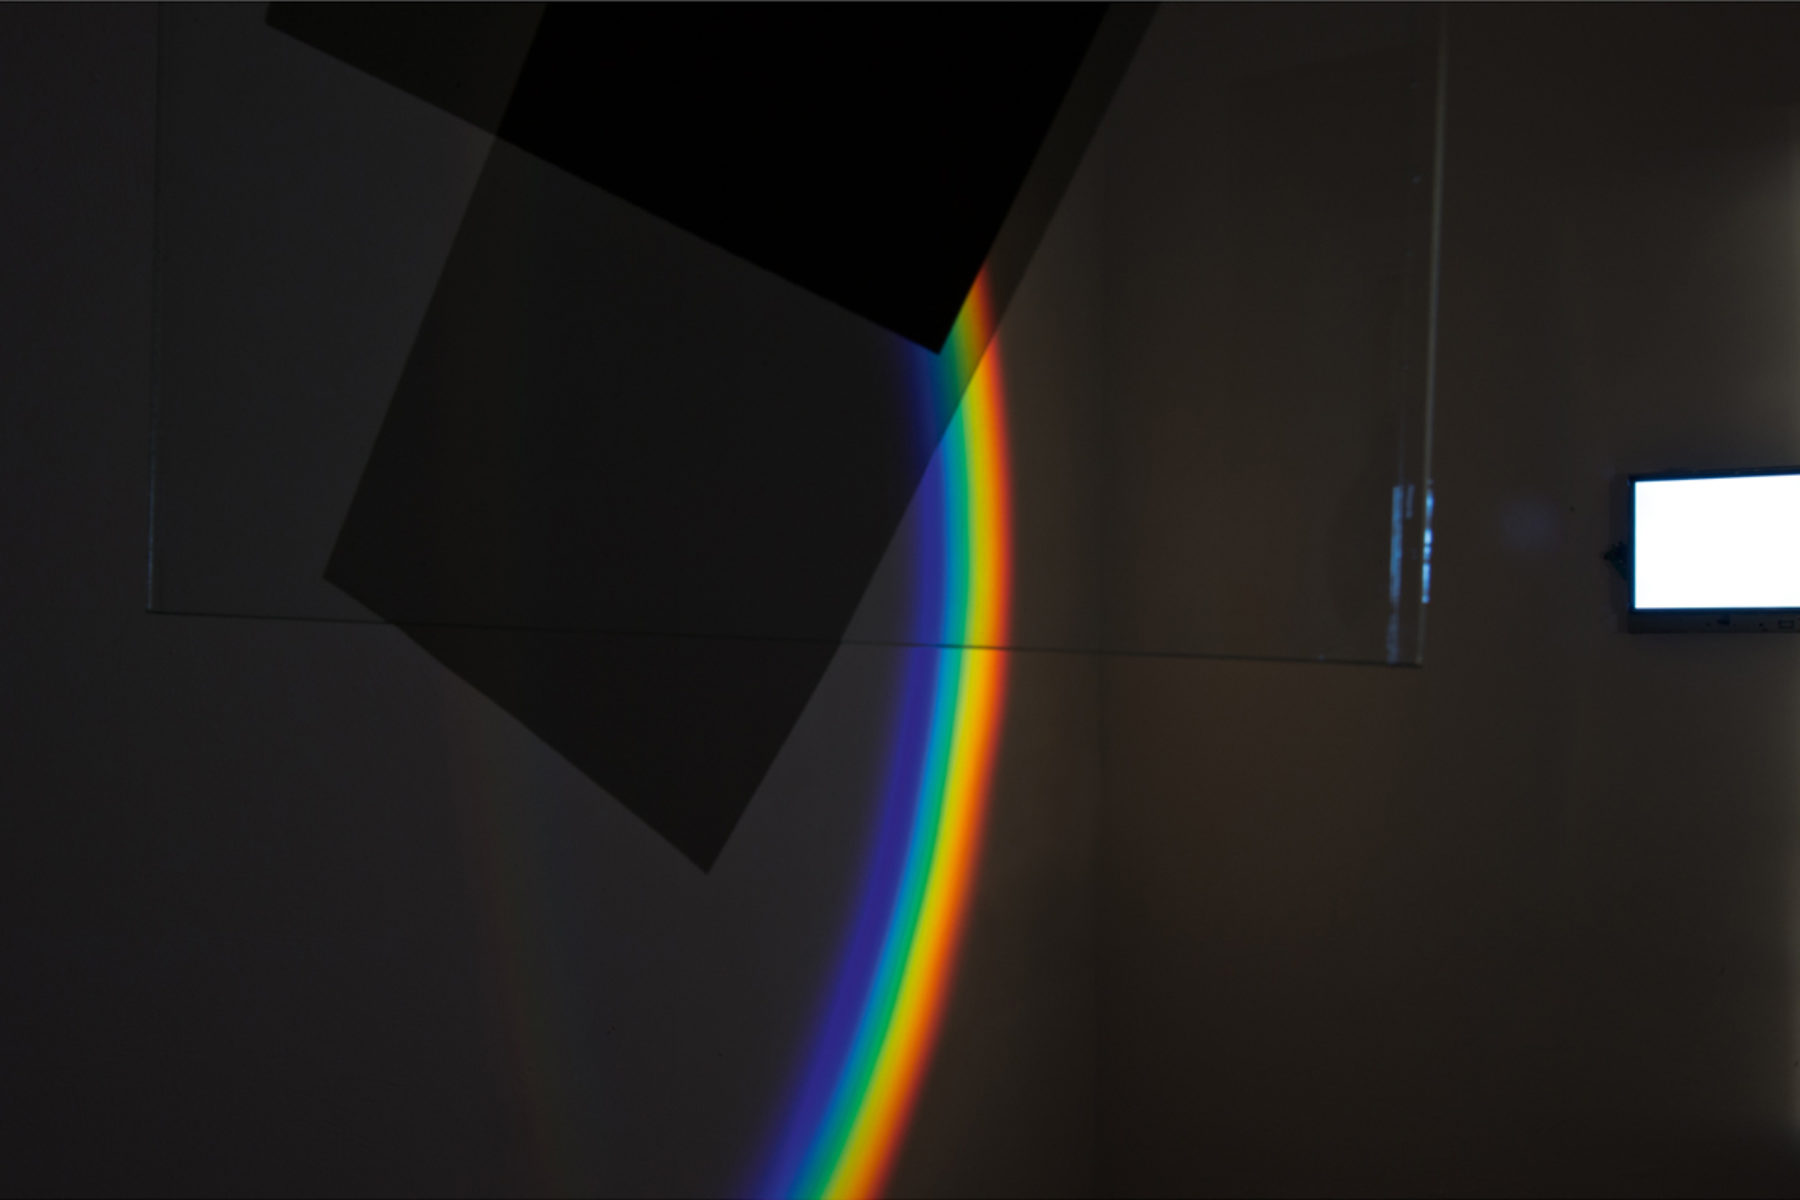 Richard Loskot, Color System, 2012, light, lcd monitor, cristal prisma, computer, polarized films, installation, j